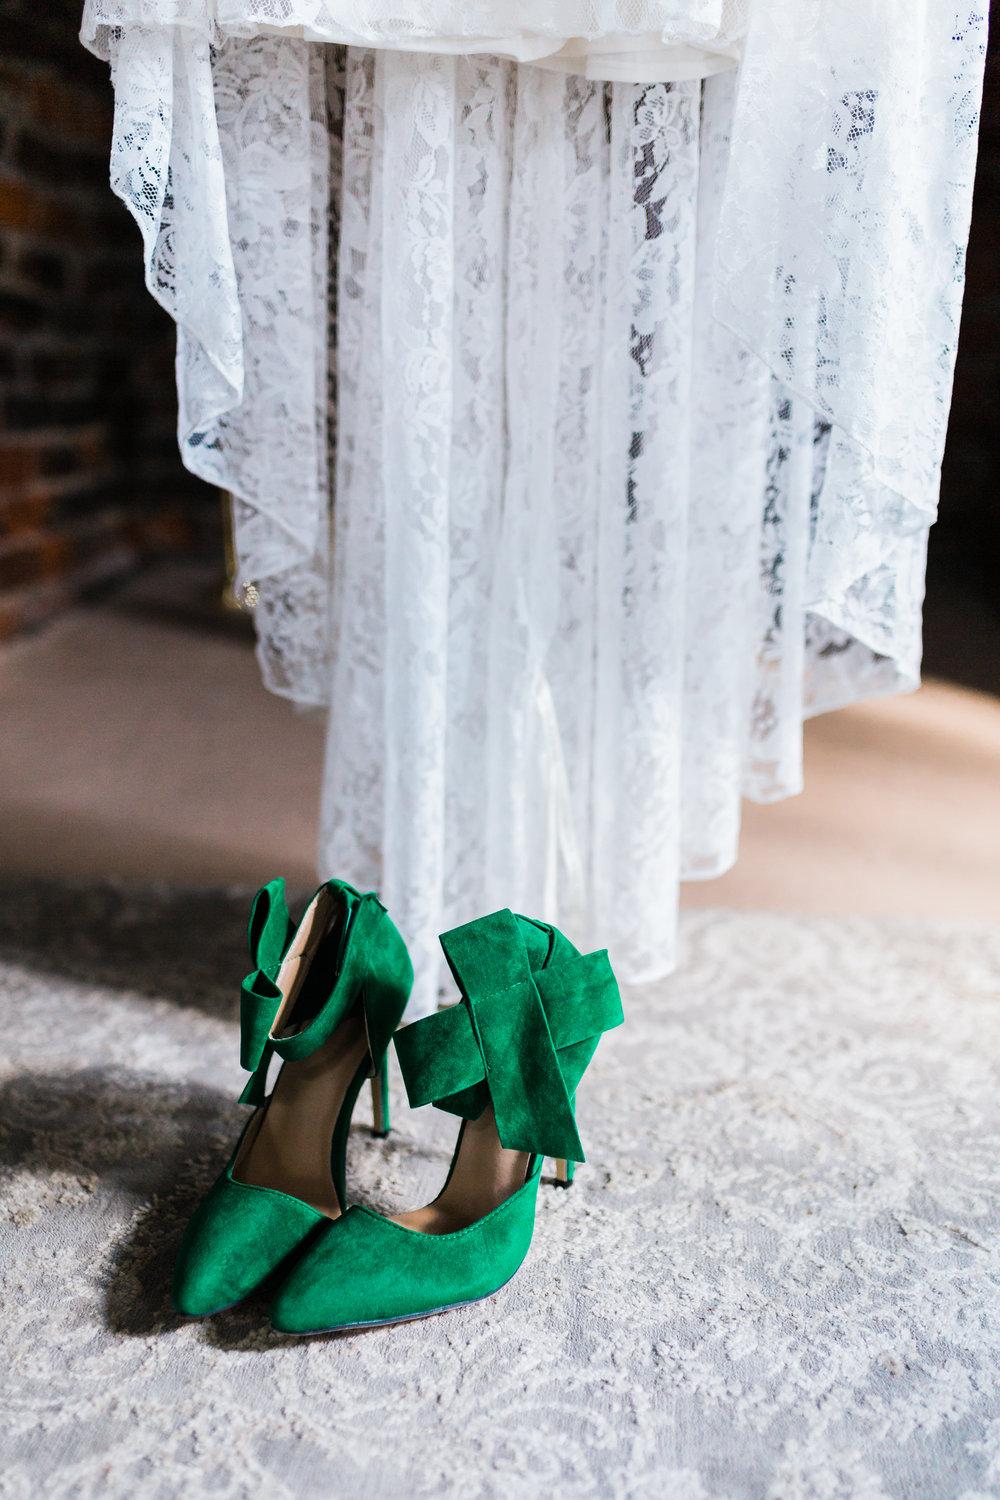 green wedding shoes - unique bridal shoes - emerald green high heels - top md wedding photo and video